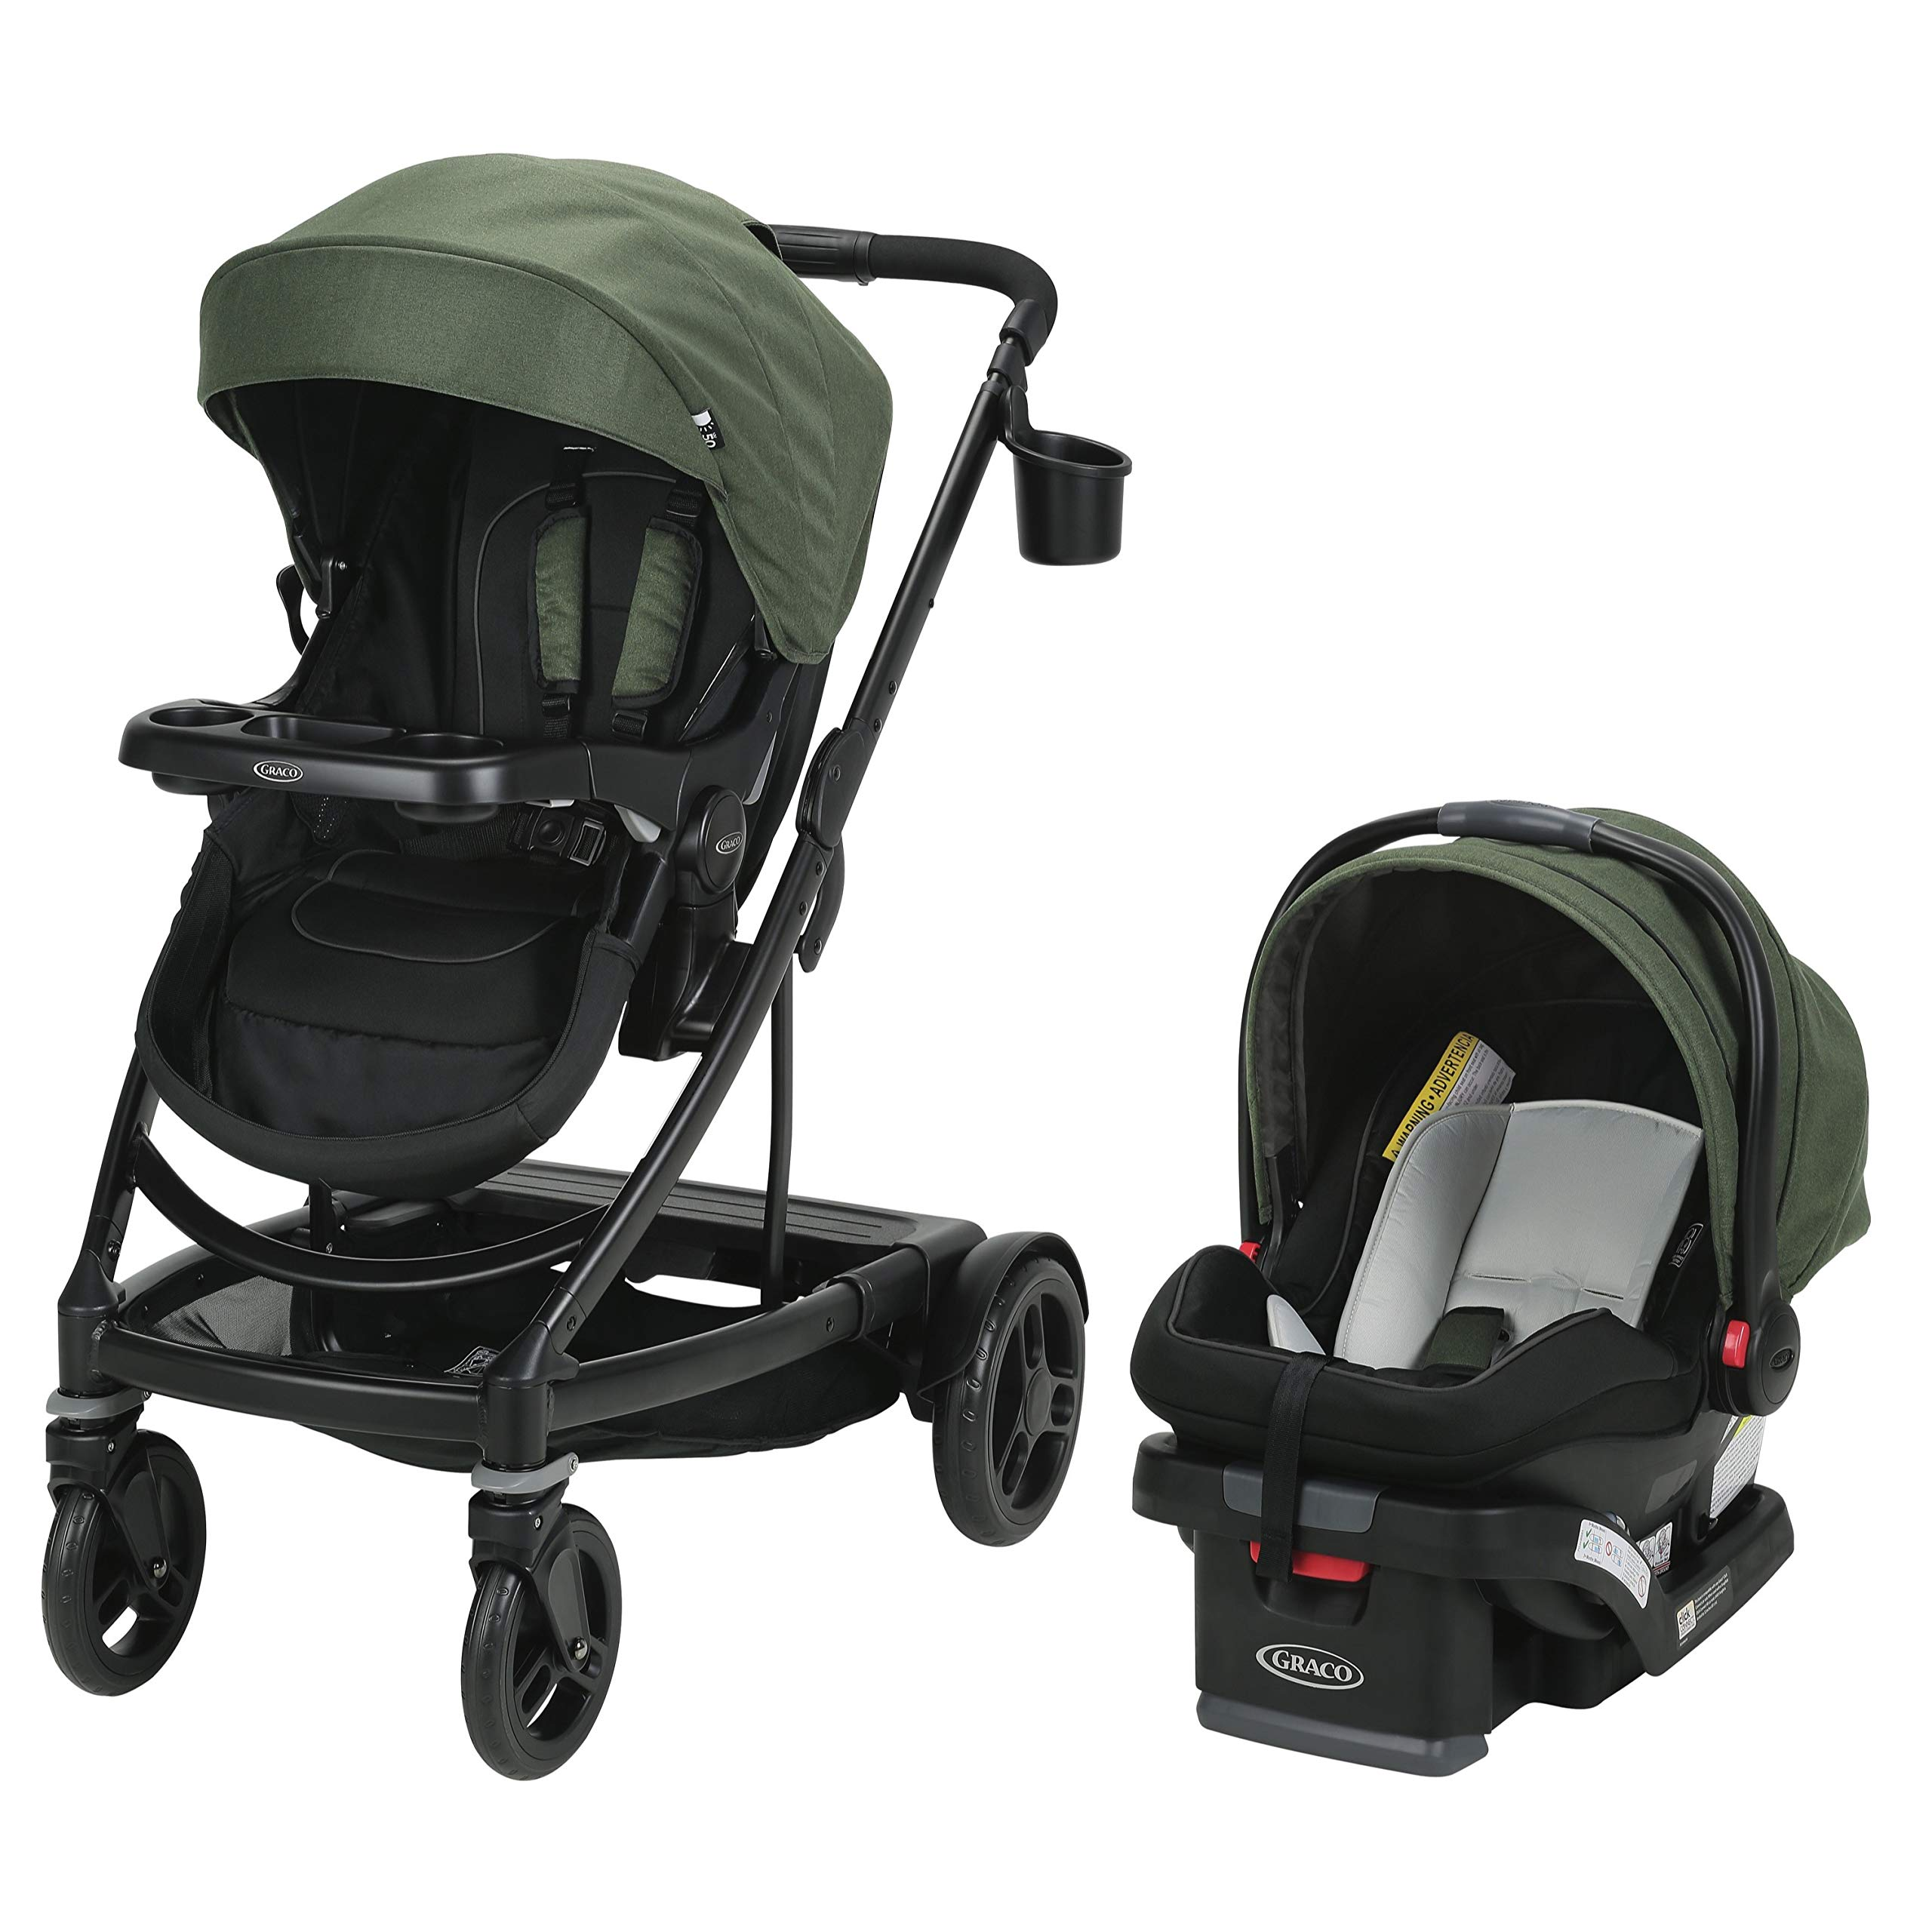 Graco Uno2Duo Travel System | Includes UNO2DUO Stroller and SnugRide SnugLock35 Infant Car Seat, Goes from Single to Double Stroller, Jules by Graco